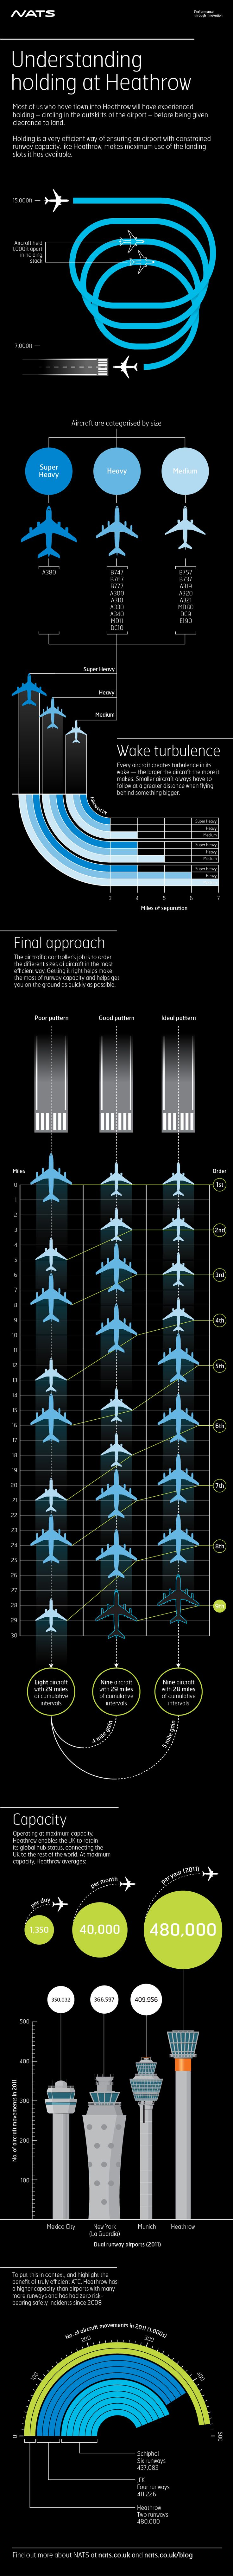 Understanding holding patterns at London Heathrow airport